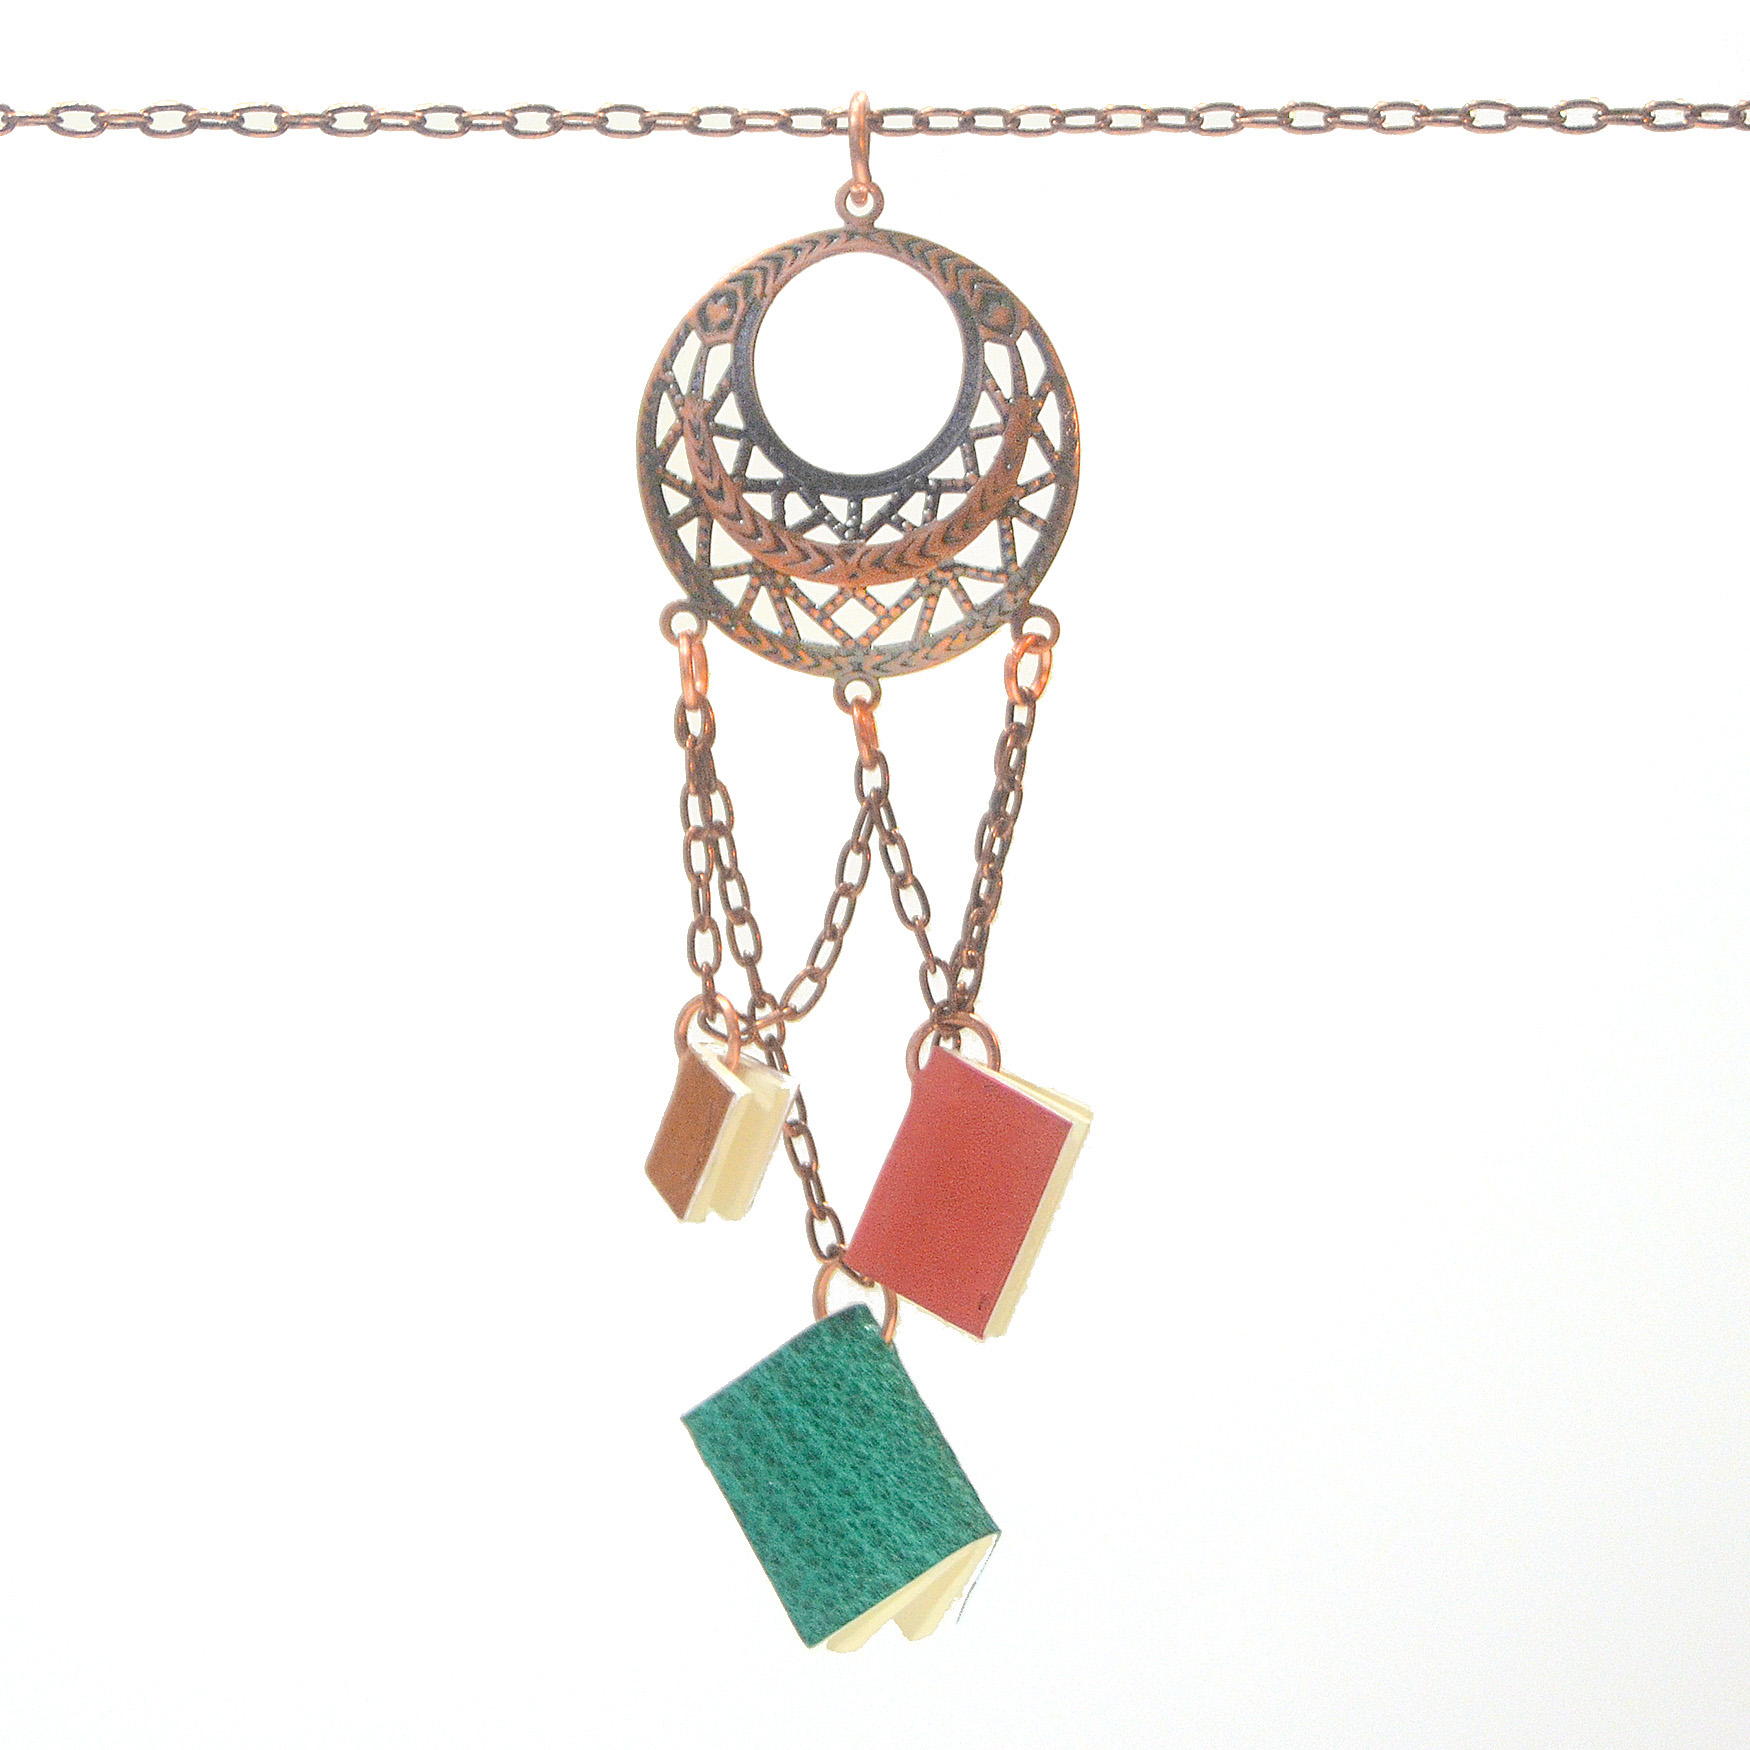 This chained-book pendant is inspired by an ancient practice of chaining rare and invaluable books to lecterns and bookshelves. These tiny books are fully functional and can be inscribed, becoming a personal, portable chained library.